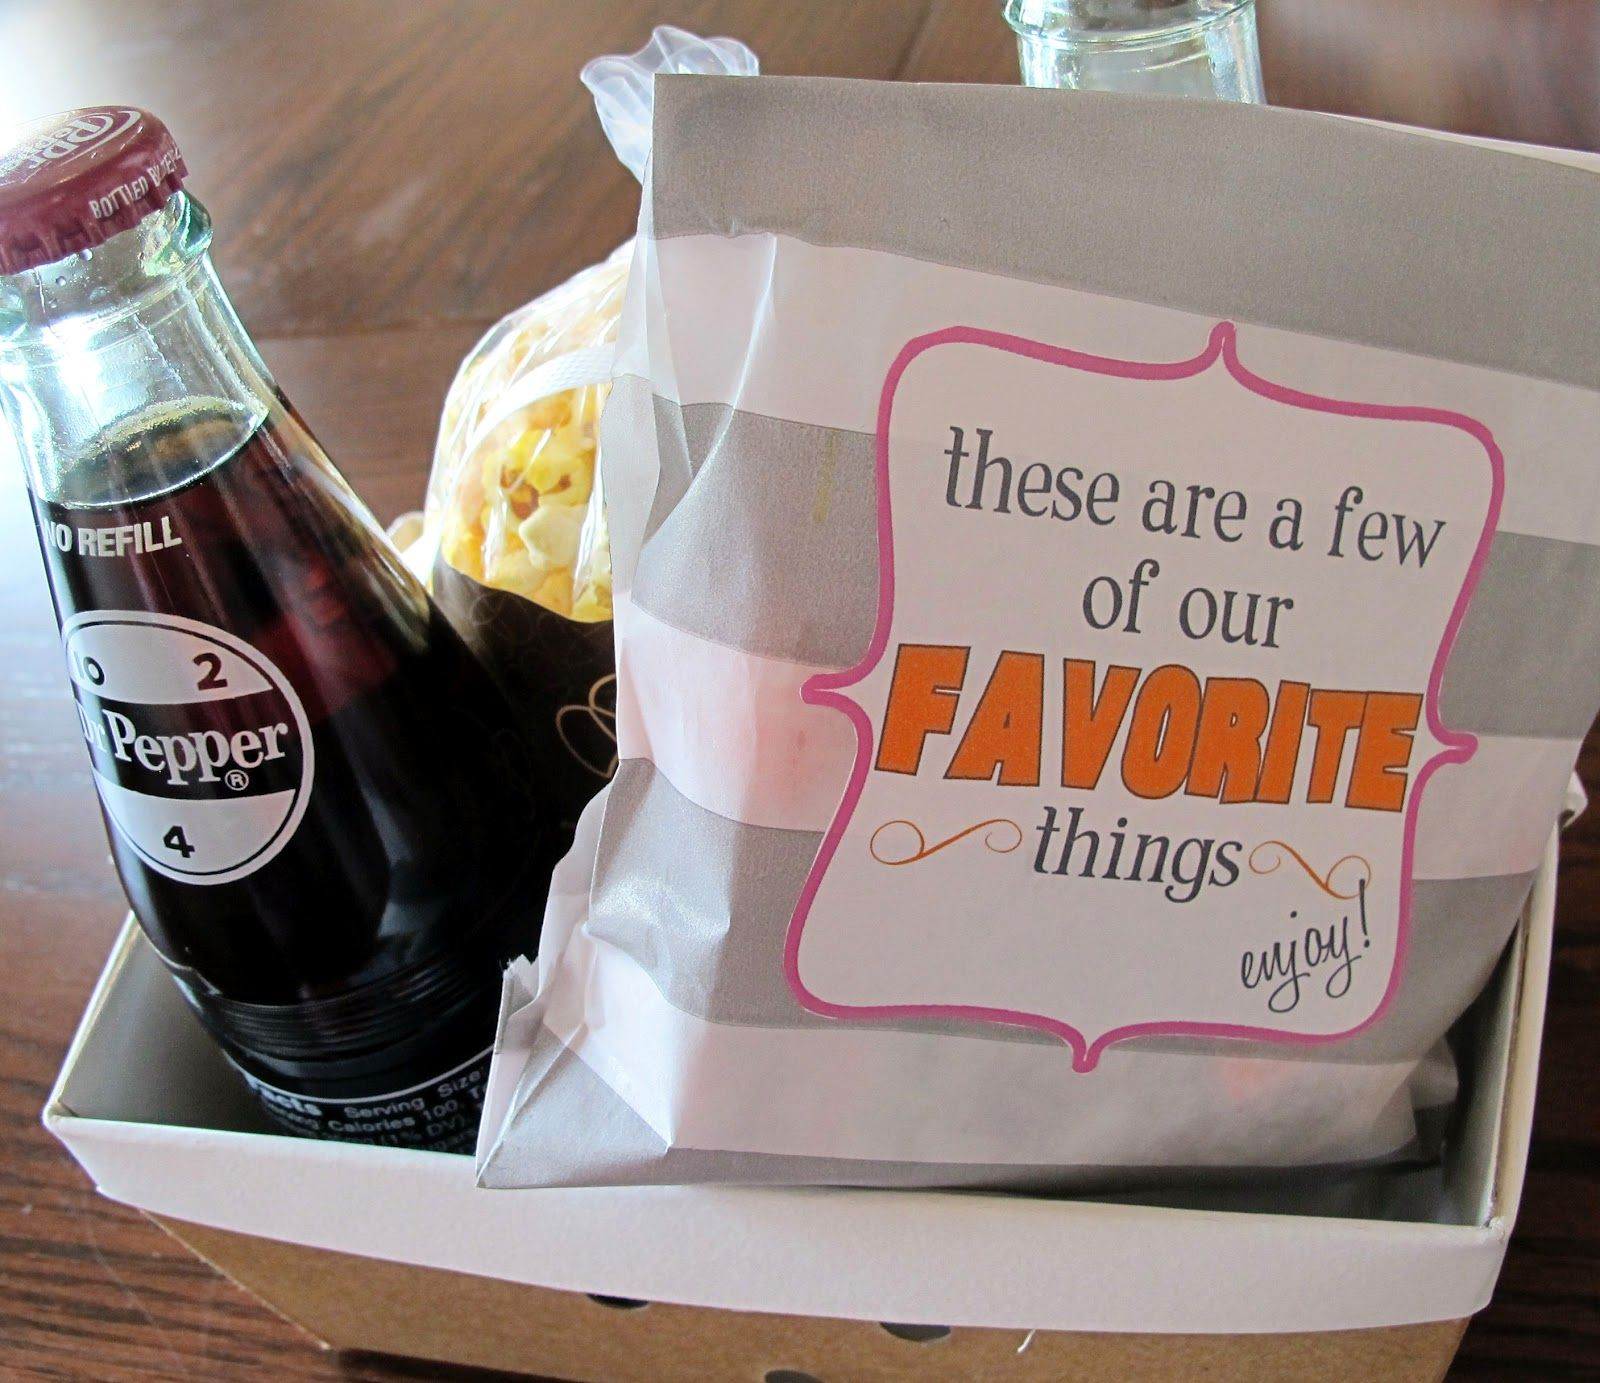 very cute for welcome bags in hotel rooms -- this would be cute